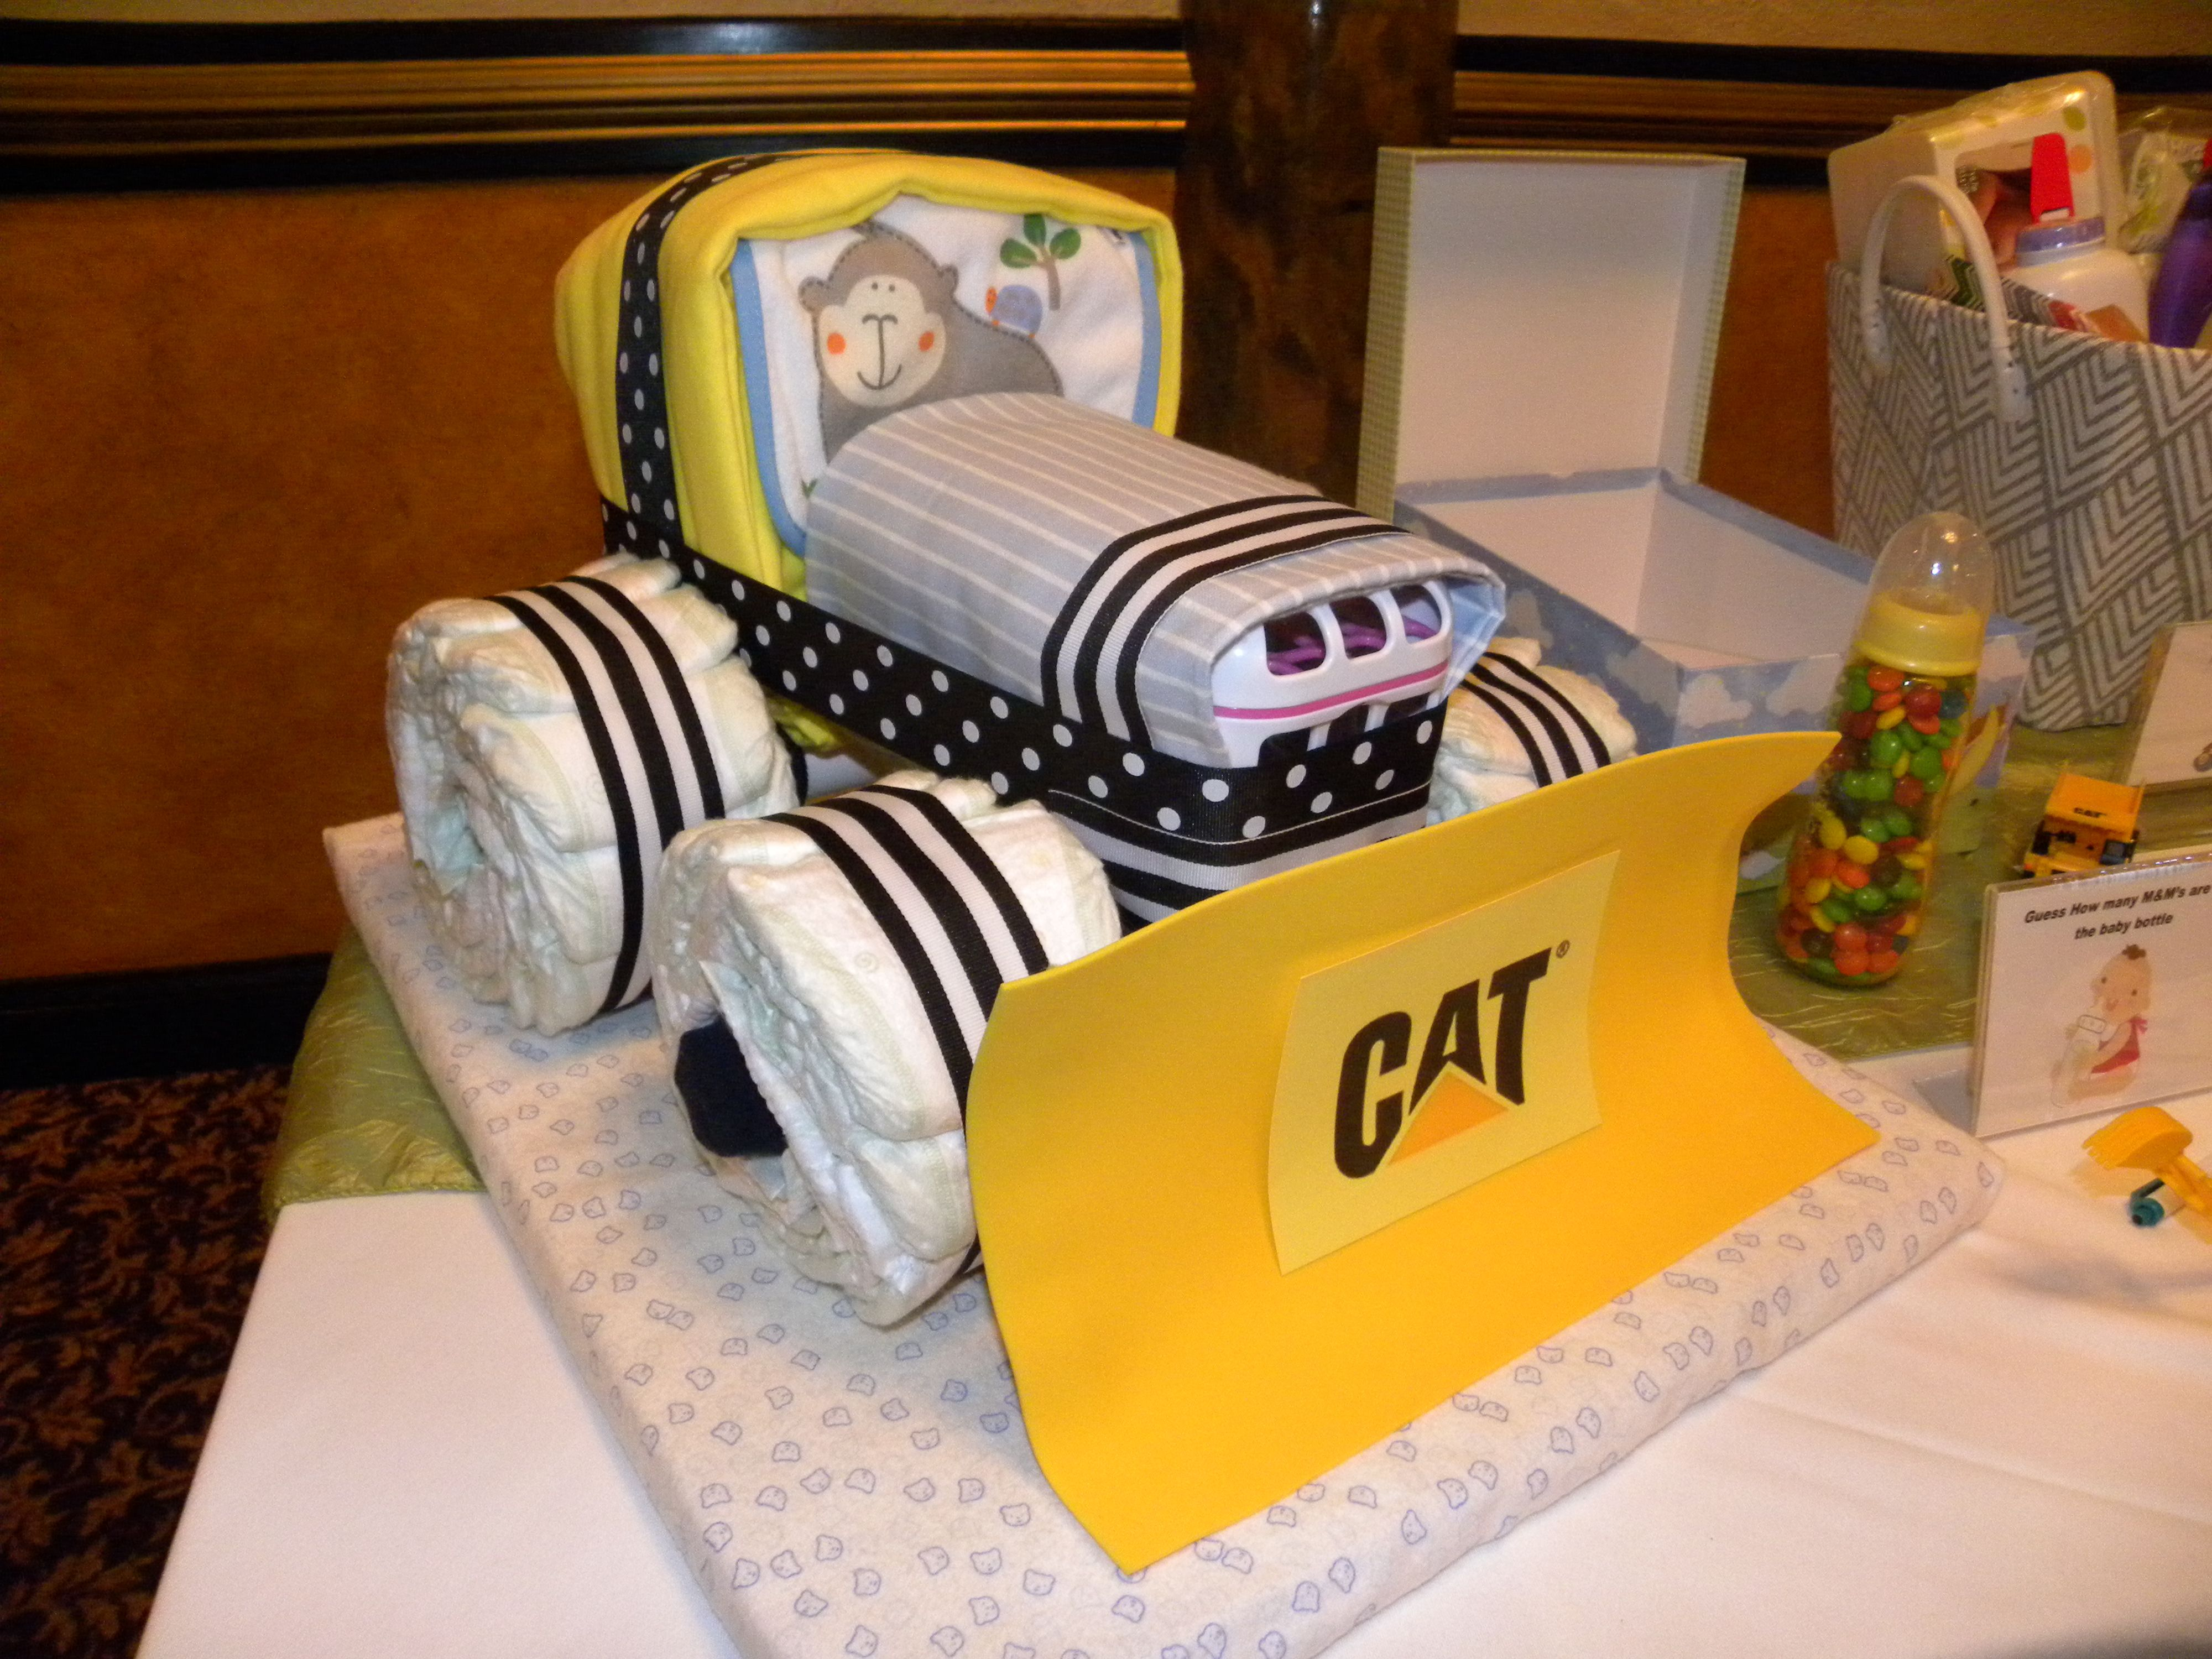 DIY my version of a CAT tractor diaper cake based upon a truck